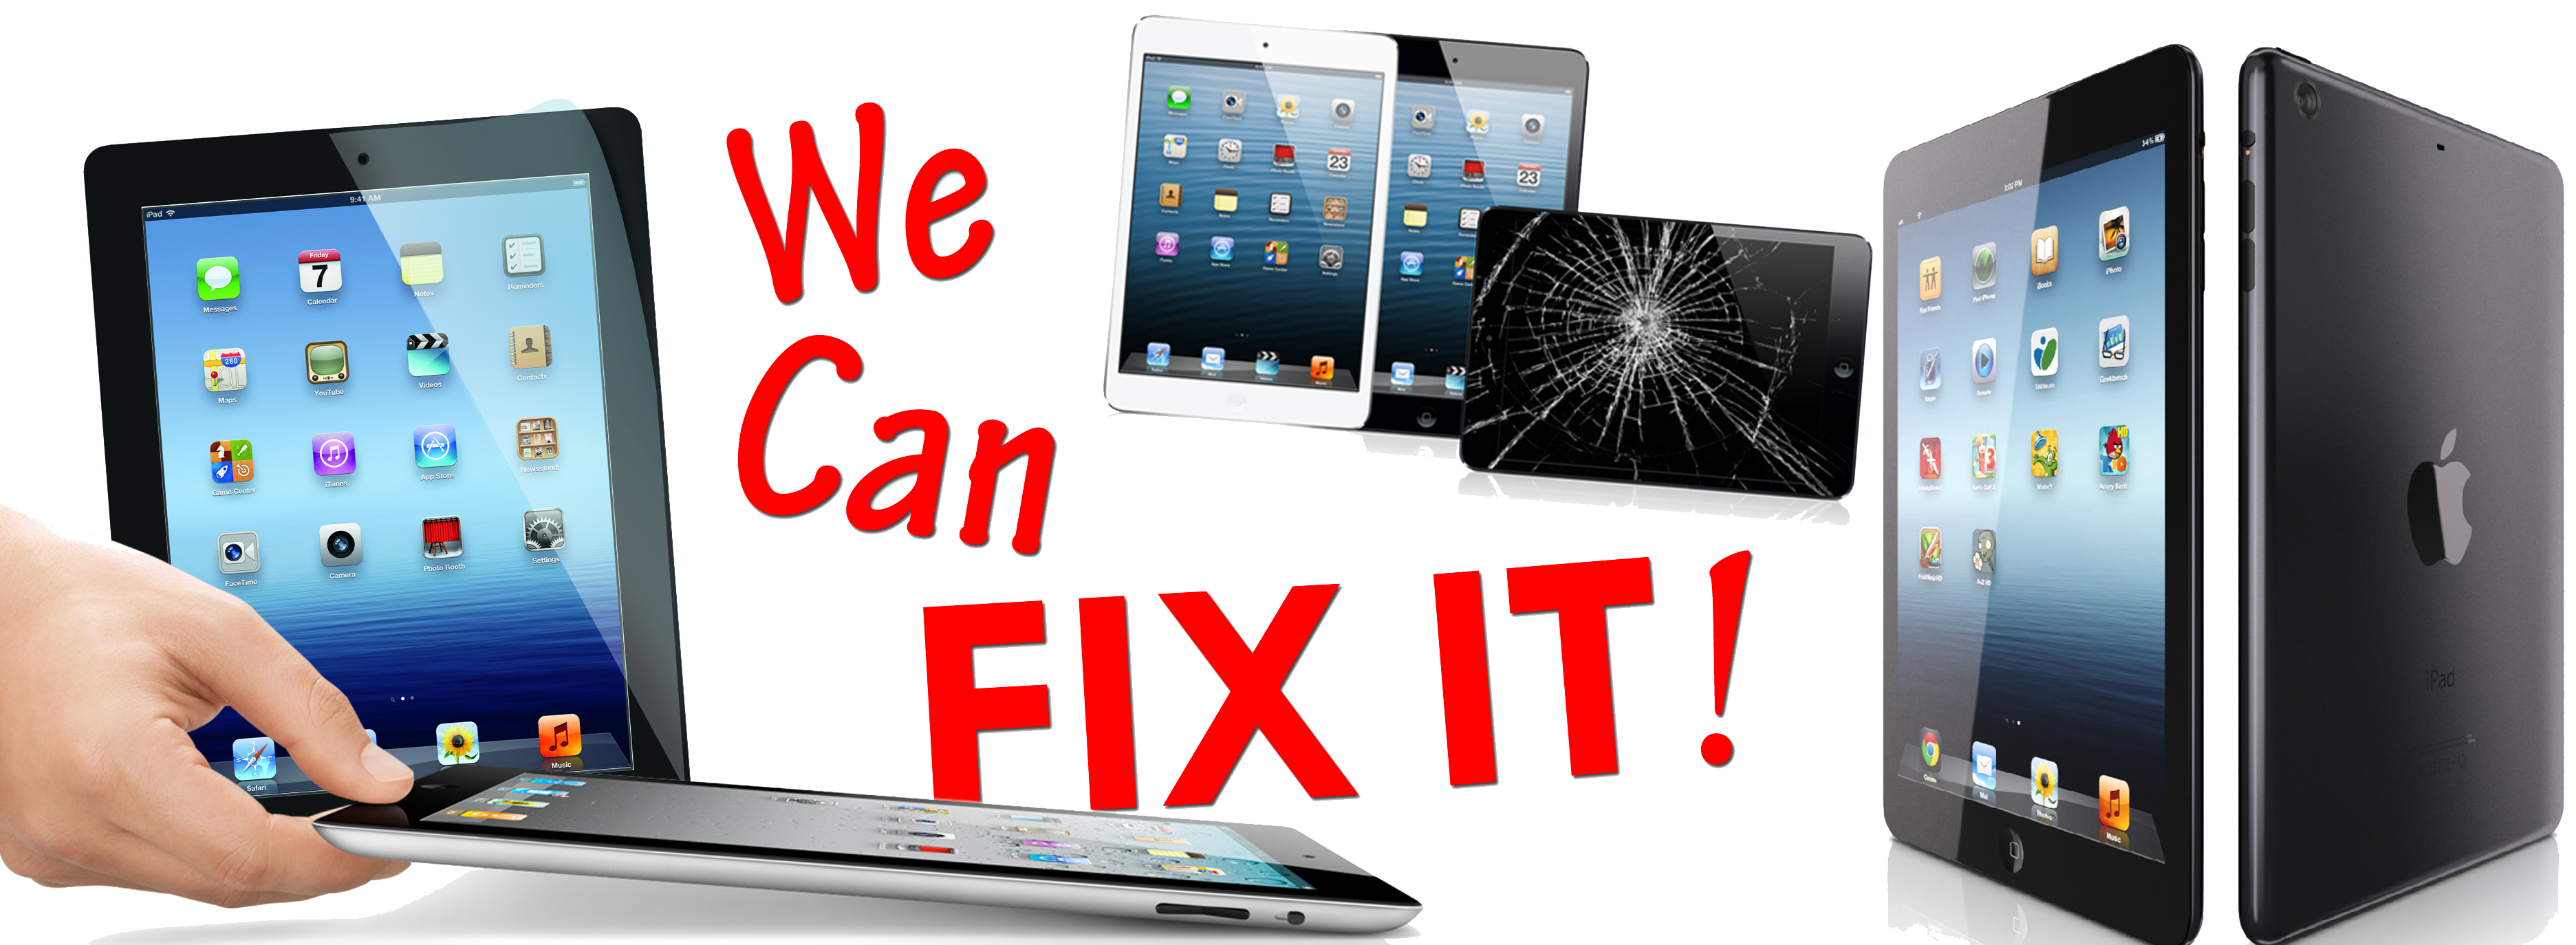 Our Certified Techs Repair Your Iphone Ipad Ipod Or Samsung Phone Anytime Anyplace Cracked Screens Battery Or Water Apple Repair Iphone Repair Ipad Repair